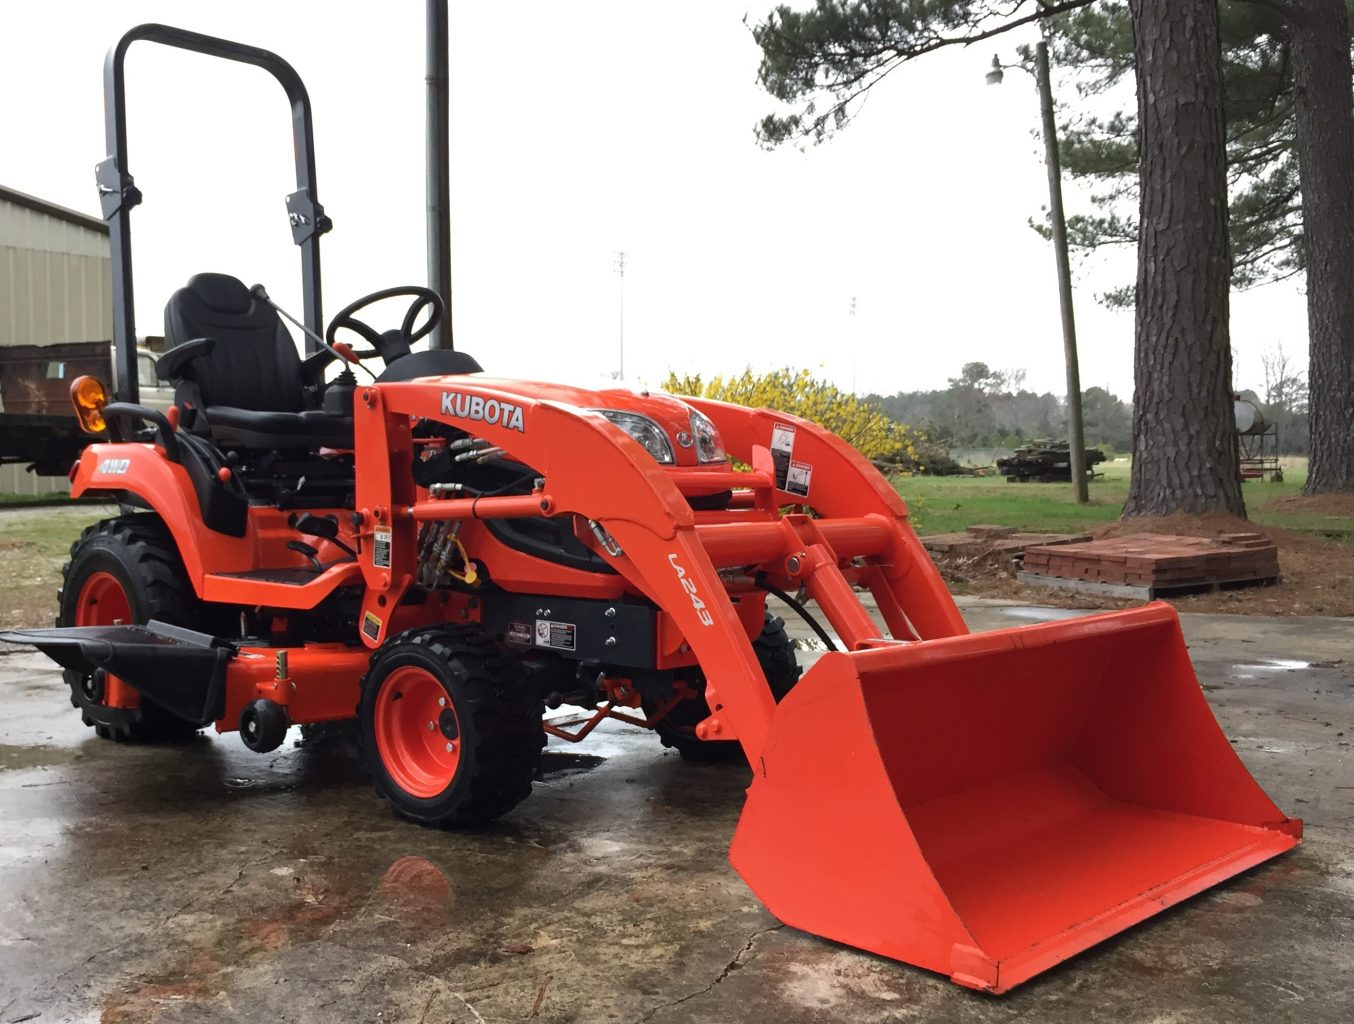 Kubota Backhoe Attachment : Kubota bx compact tractor price attachments specs review